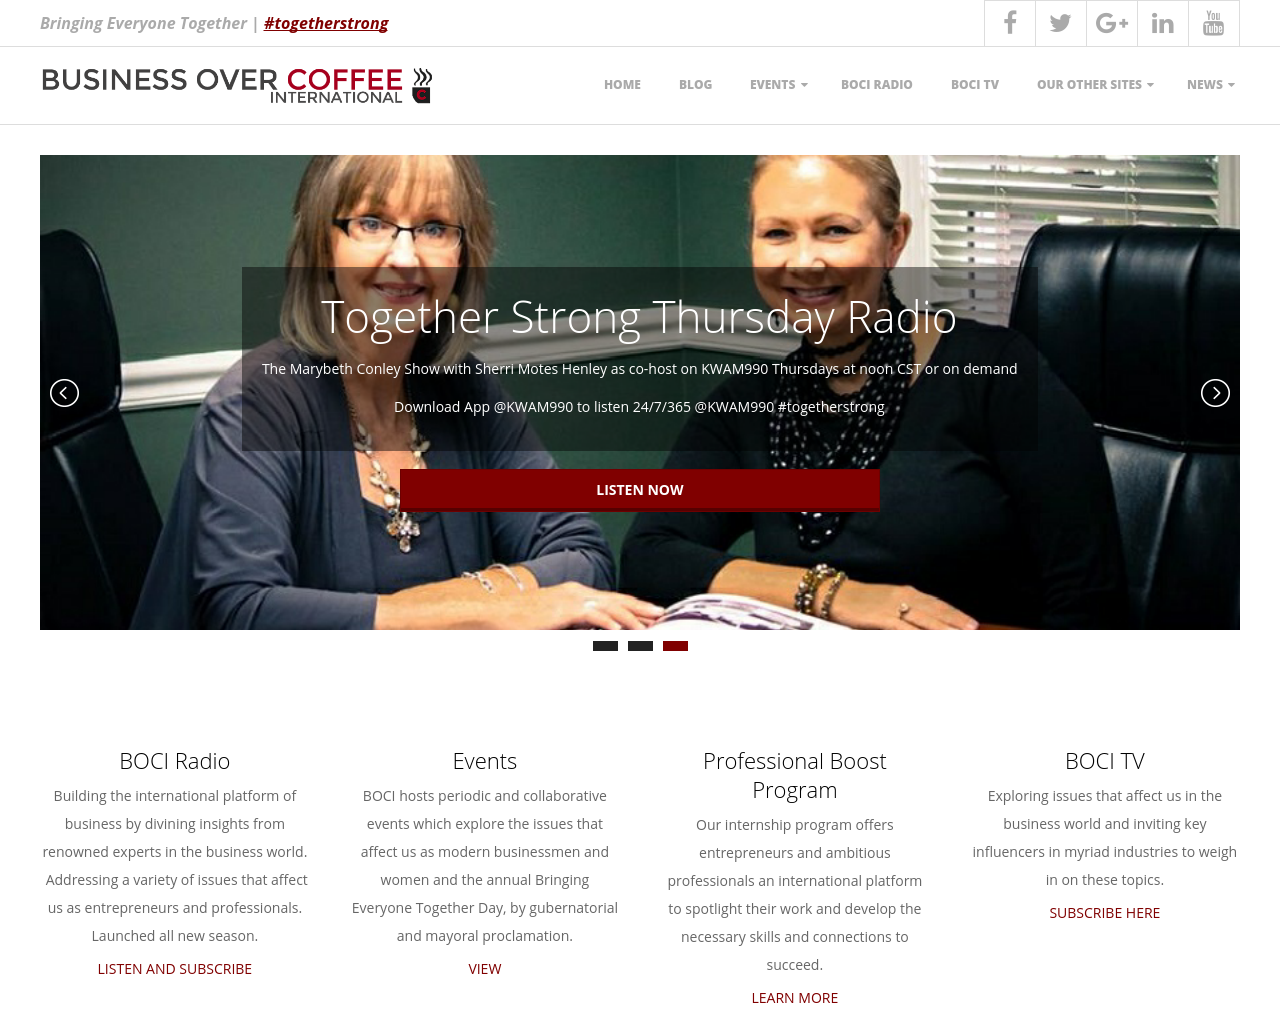 Business-Over-Coffee-Advertising-Reviews-Pricing